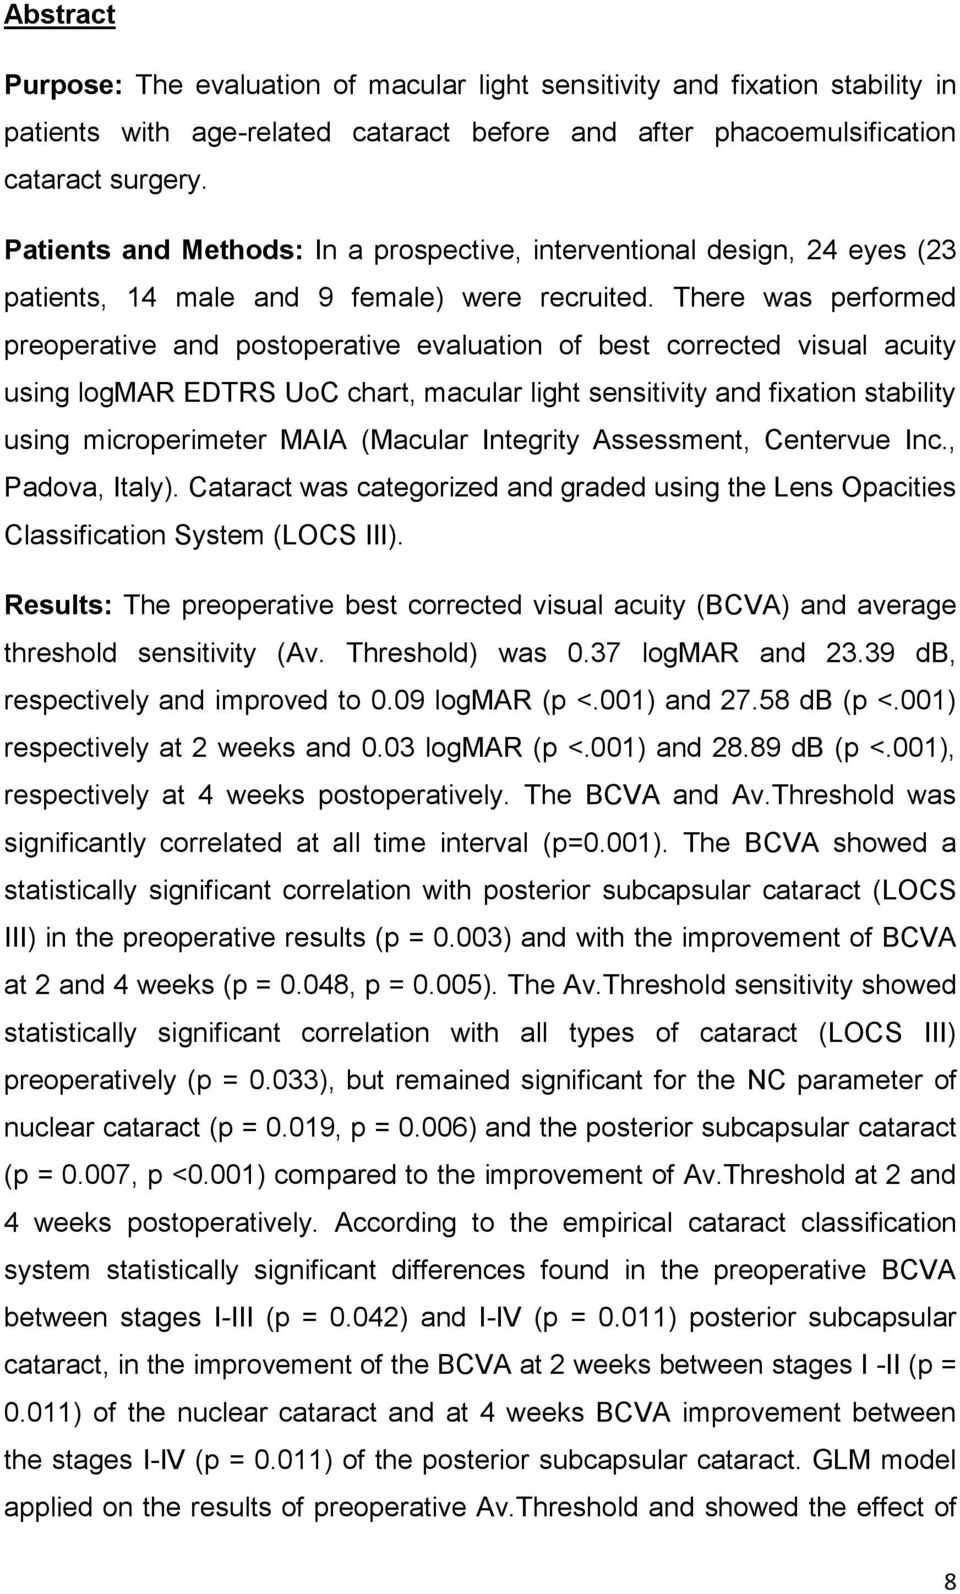 There was performed preoperative and postoperative evaluation of best corrected visual acuity using logmar EDTRS UoC chart, macular light sensitivity and fixation stability using microperimeter MAIA